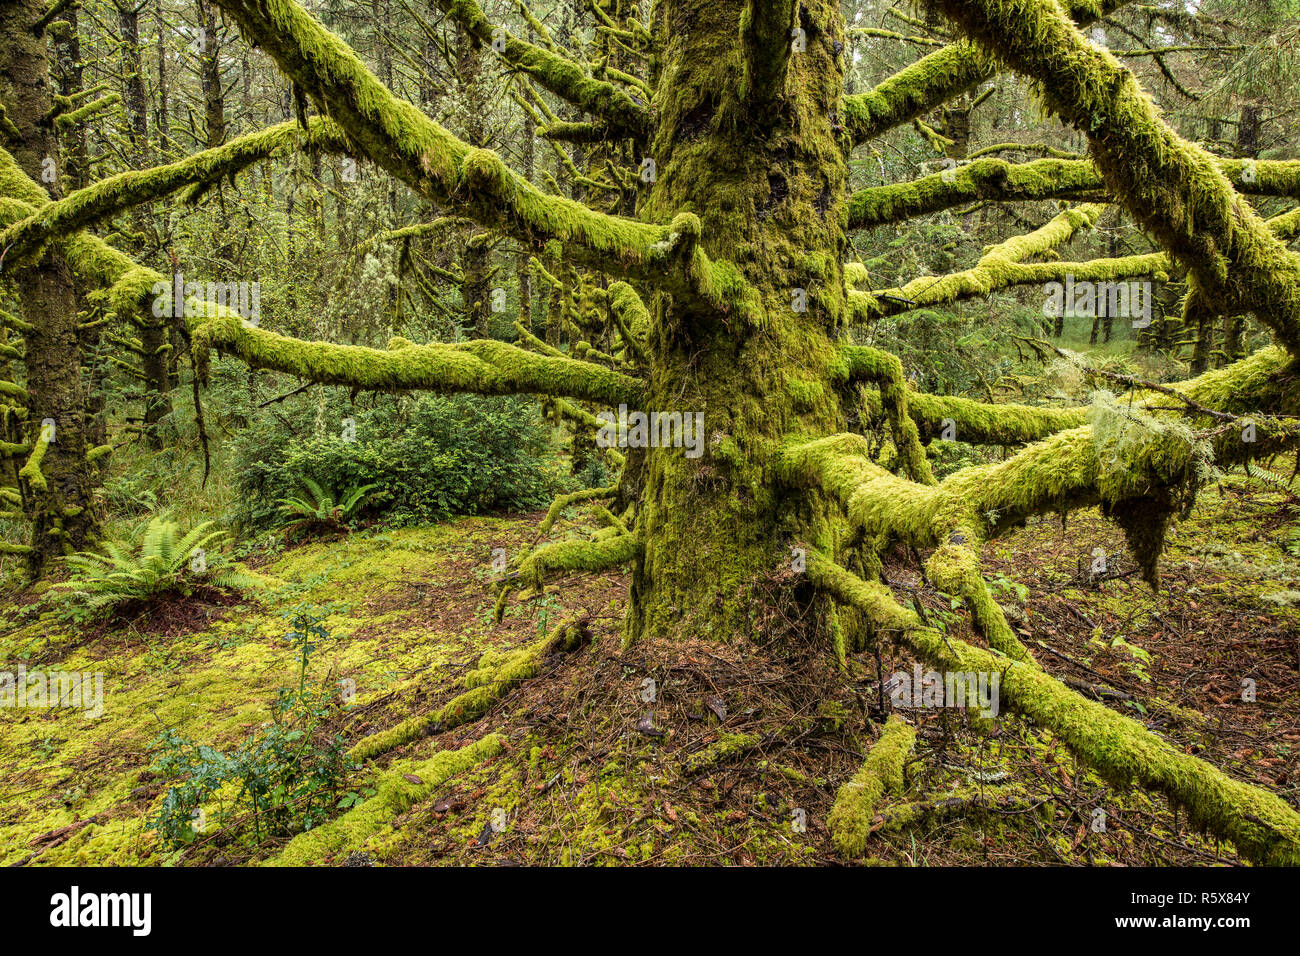 Hemlock forest with holly and sword ferns, Fort Stevens State Park, October, OR, USA, by Dominique Braud/Dembinsky Photo Assoc - Stock Image